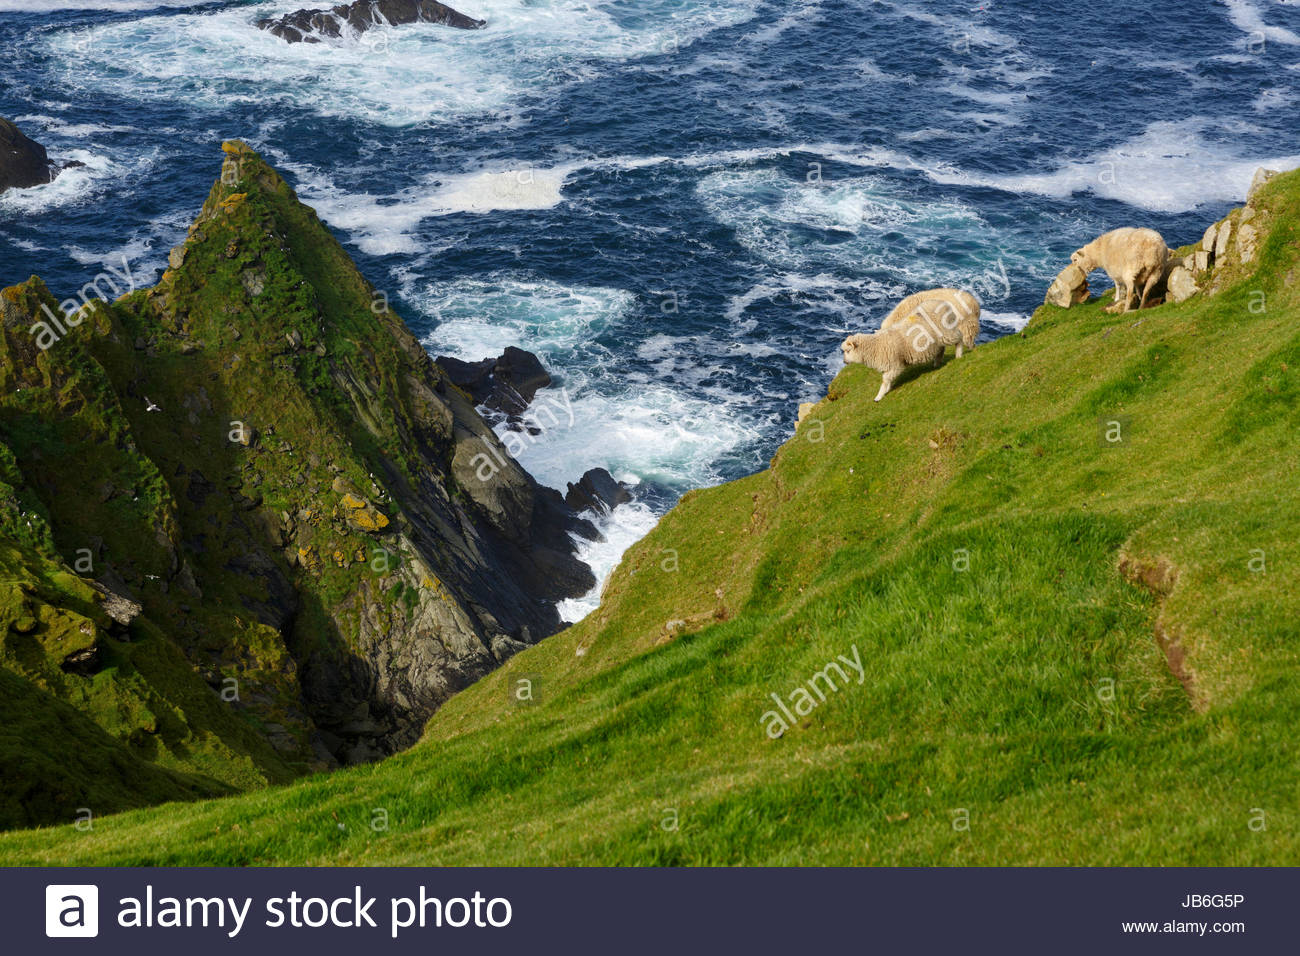 Sheep on the cliffs of Hermaness, Unst, Shetland - Stock Image